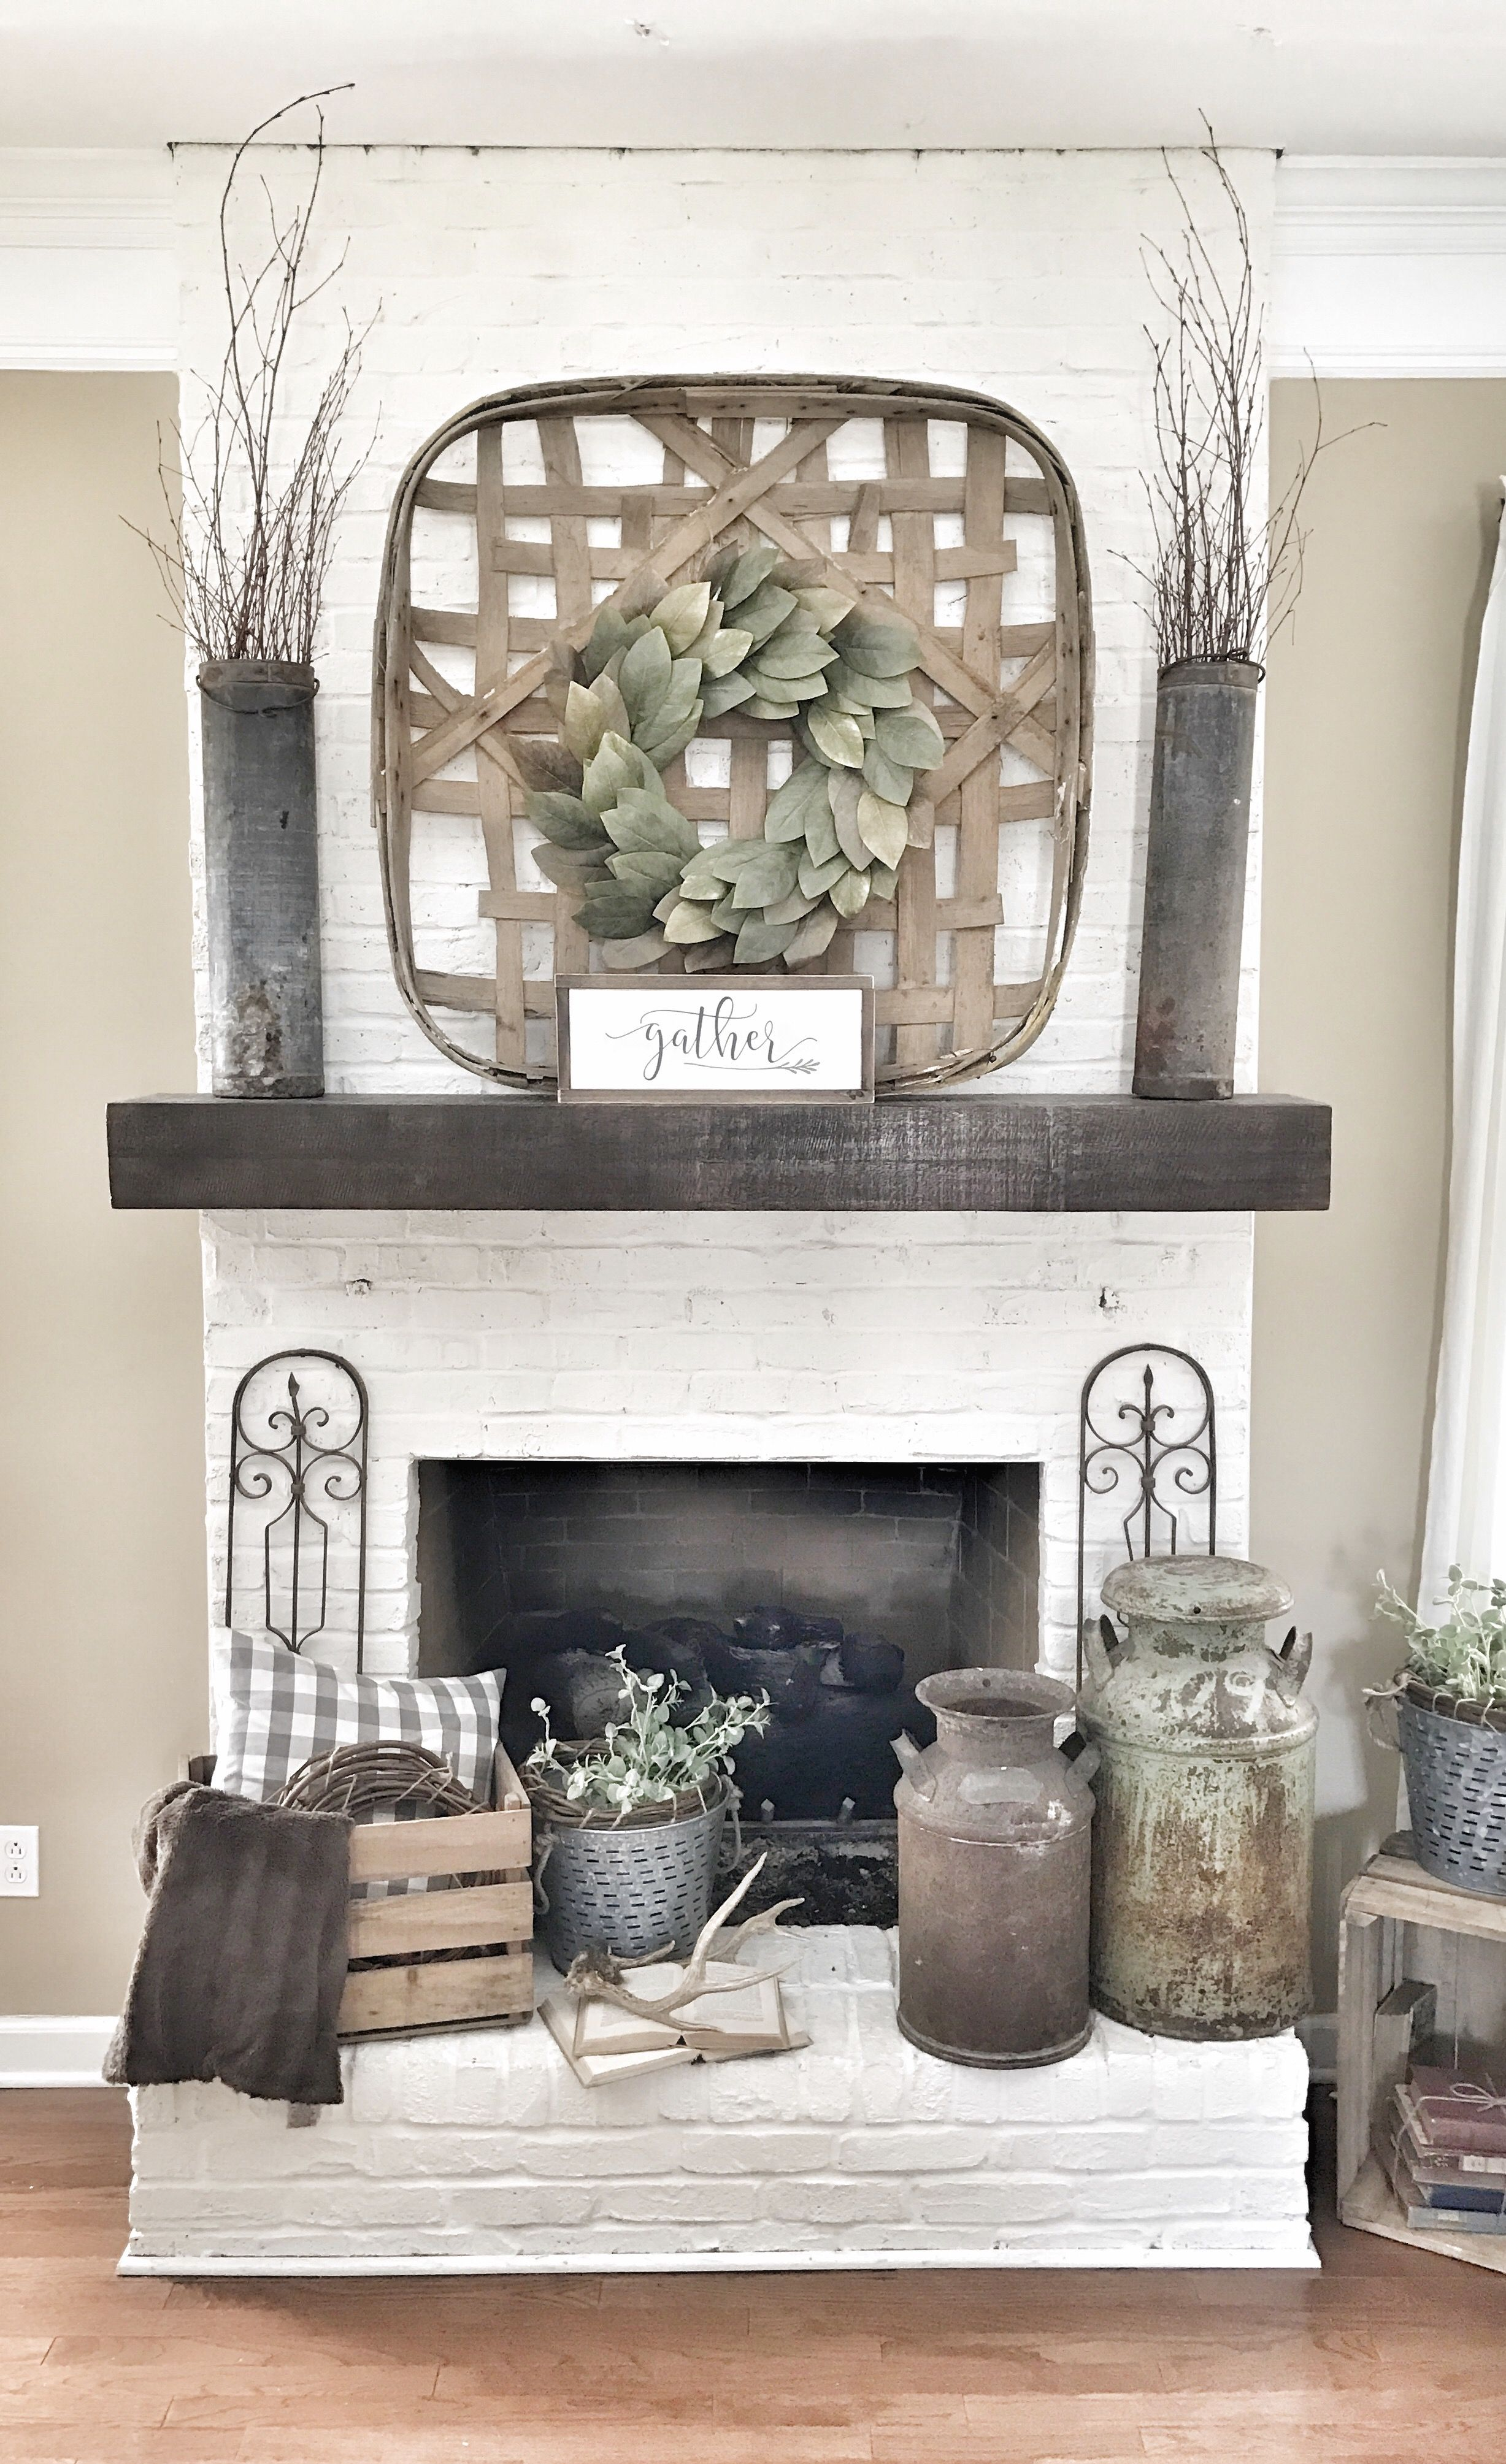 Farmhouse Rustic Fireplace Mantel Decor Painted White Brick Fireplace Fixer Upper Style Ig